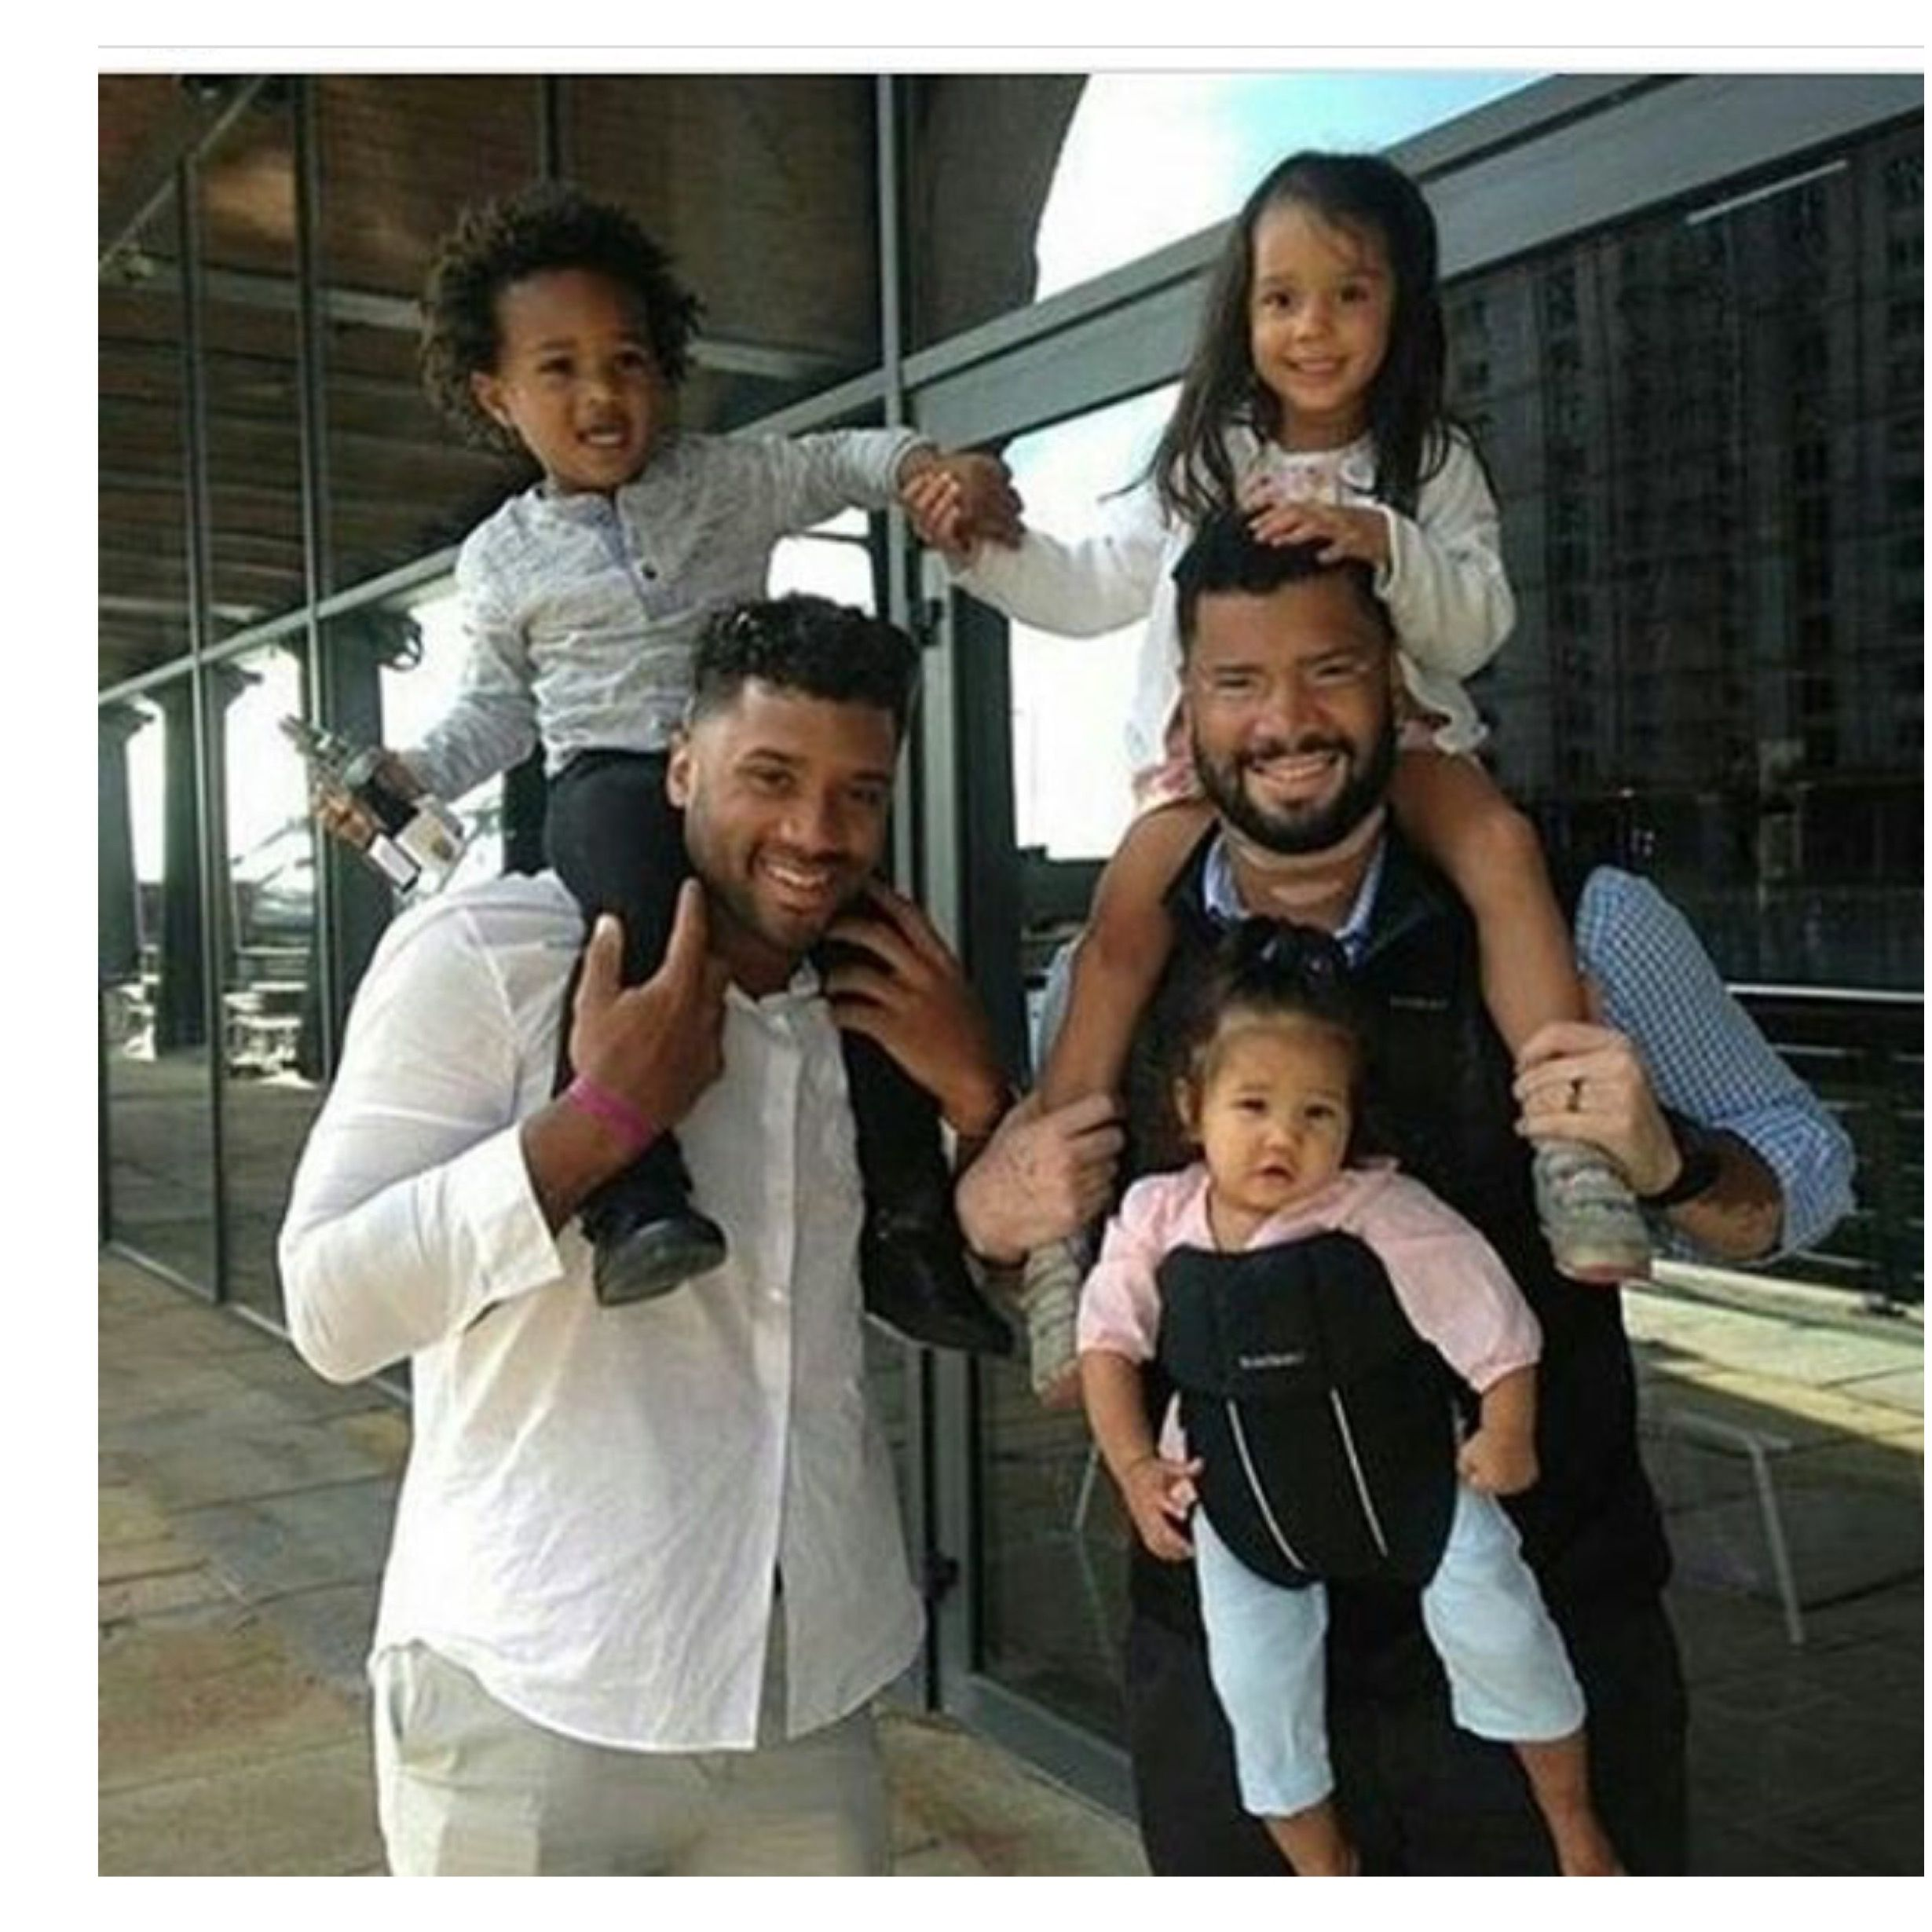 Pin By Dgdv On Men Ciara And Russell Wilson Ciara And Russell Kids Photos